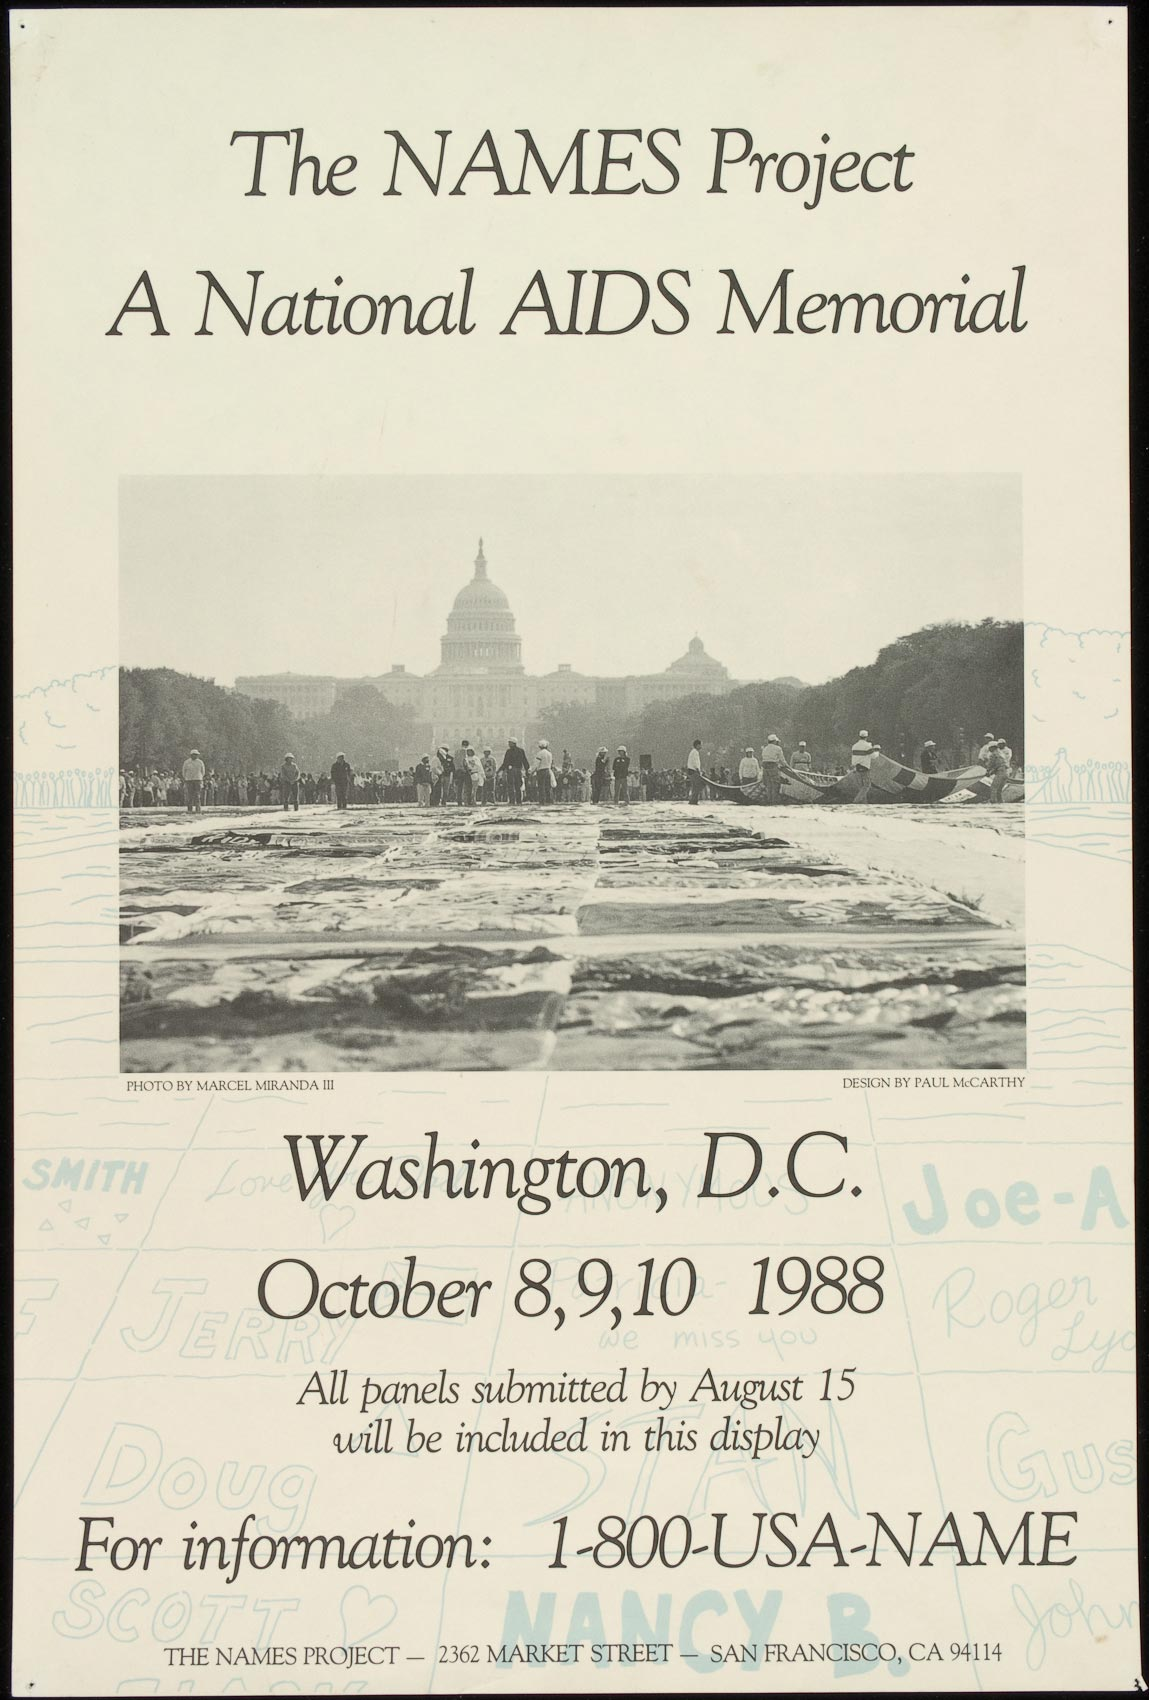 A 1988 poster made by the NAMES Project, based in San Francisco